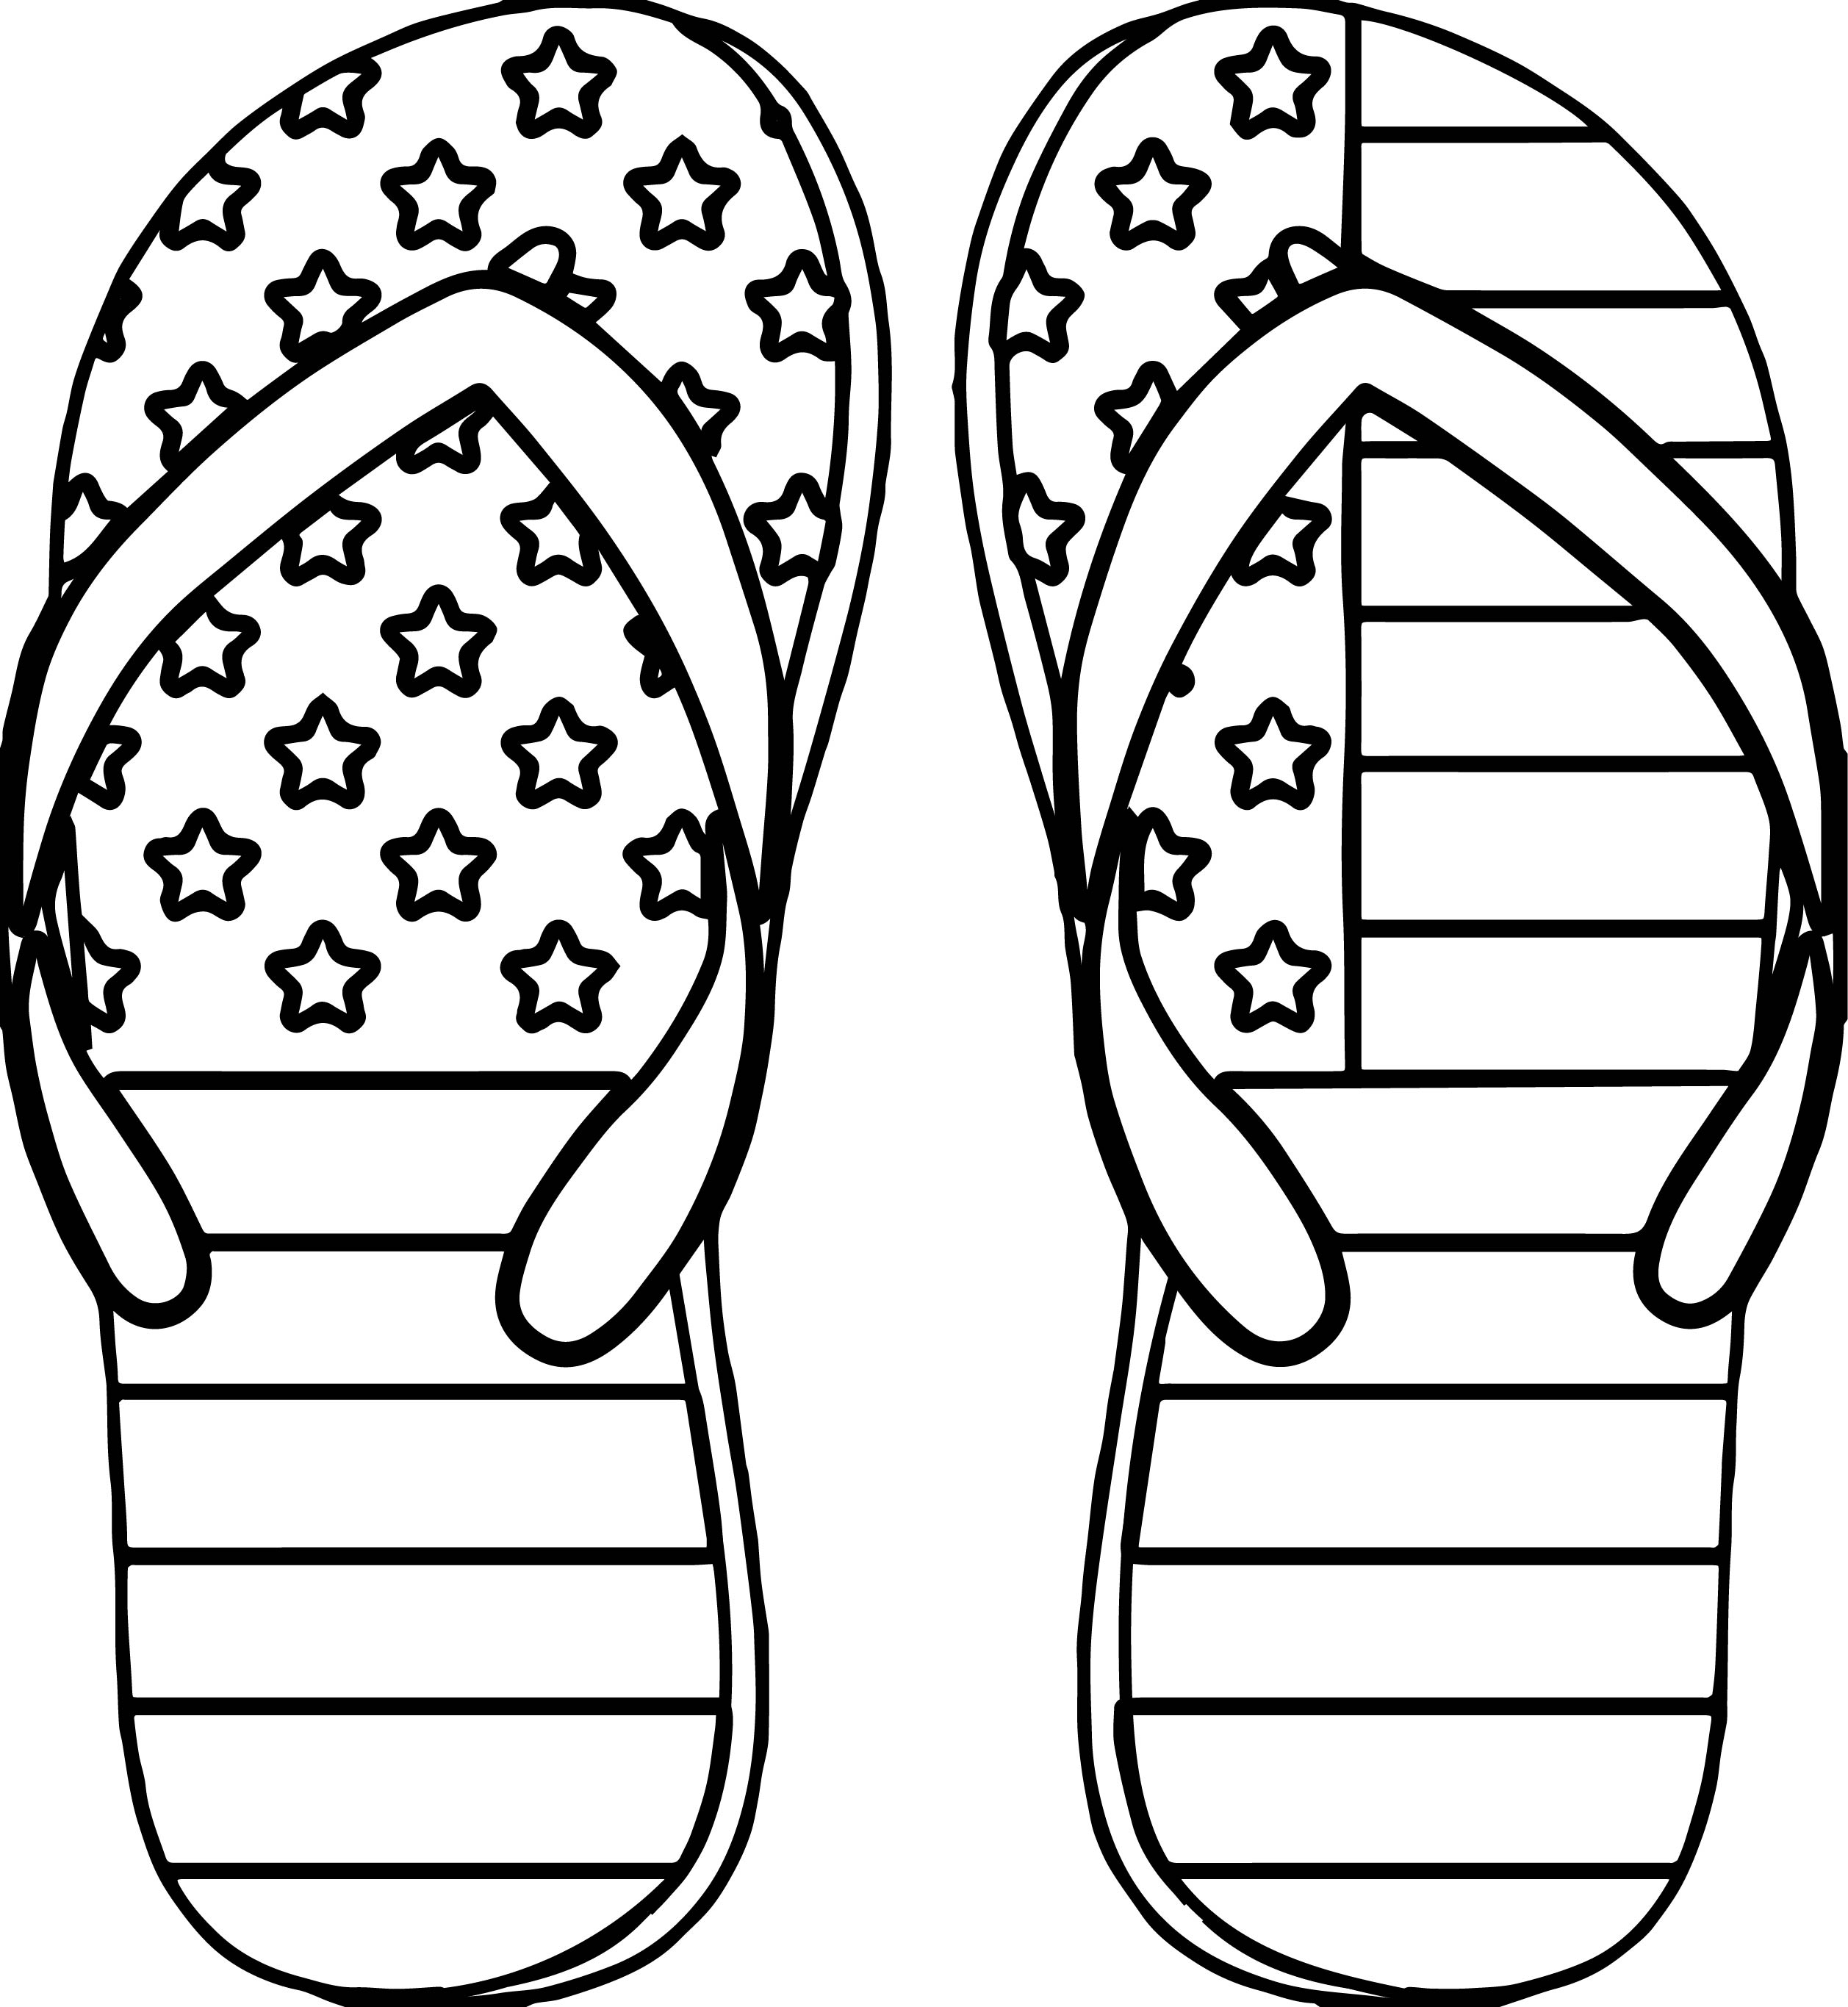 fourth of july coloring pages 5 free fourth of july coloring pages july fourth coloring pages of